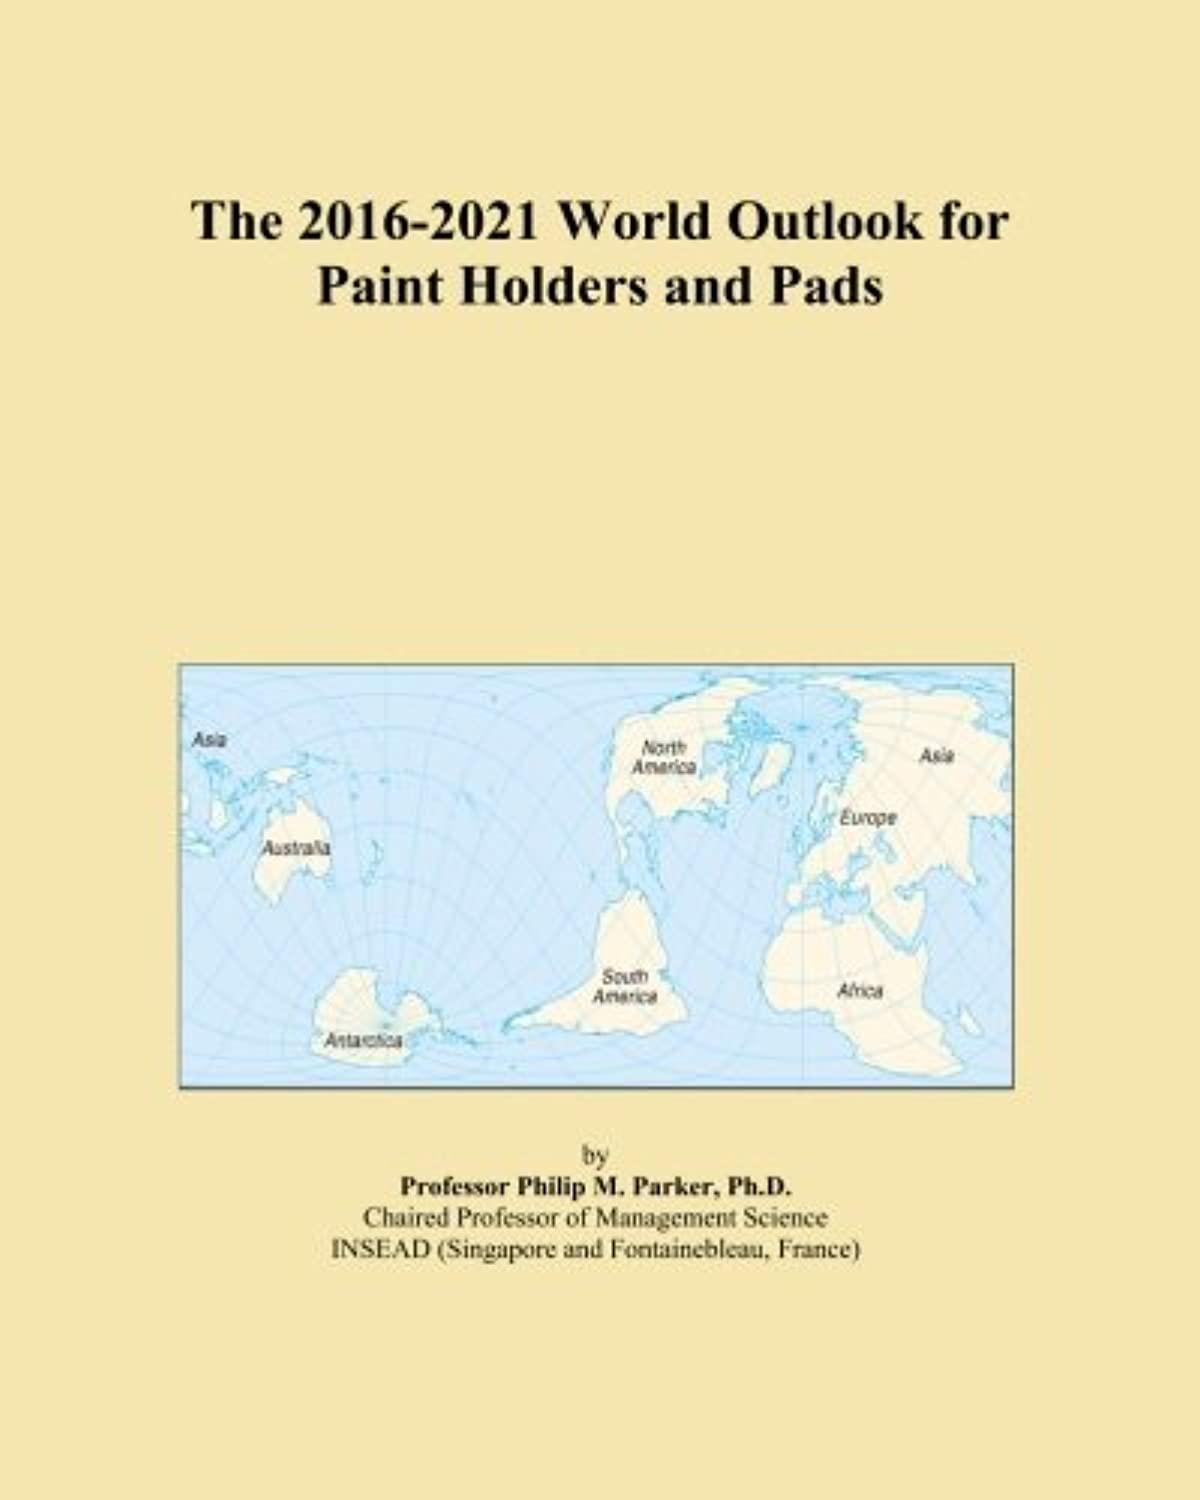 The 2016-2021 World Outlook for Paint Holders and Pads